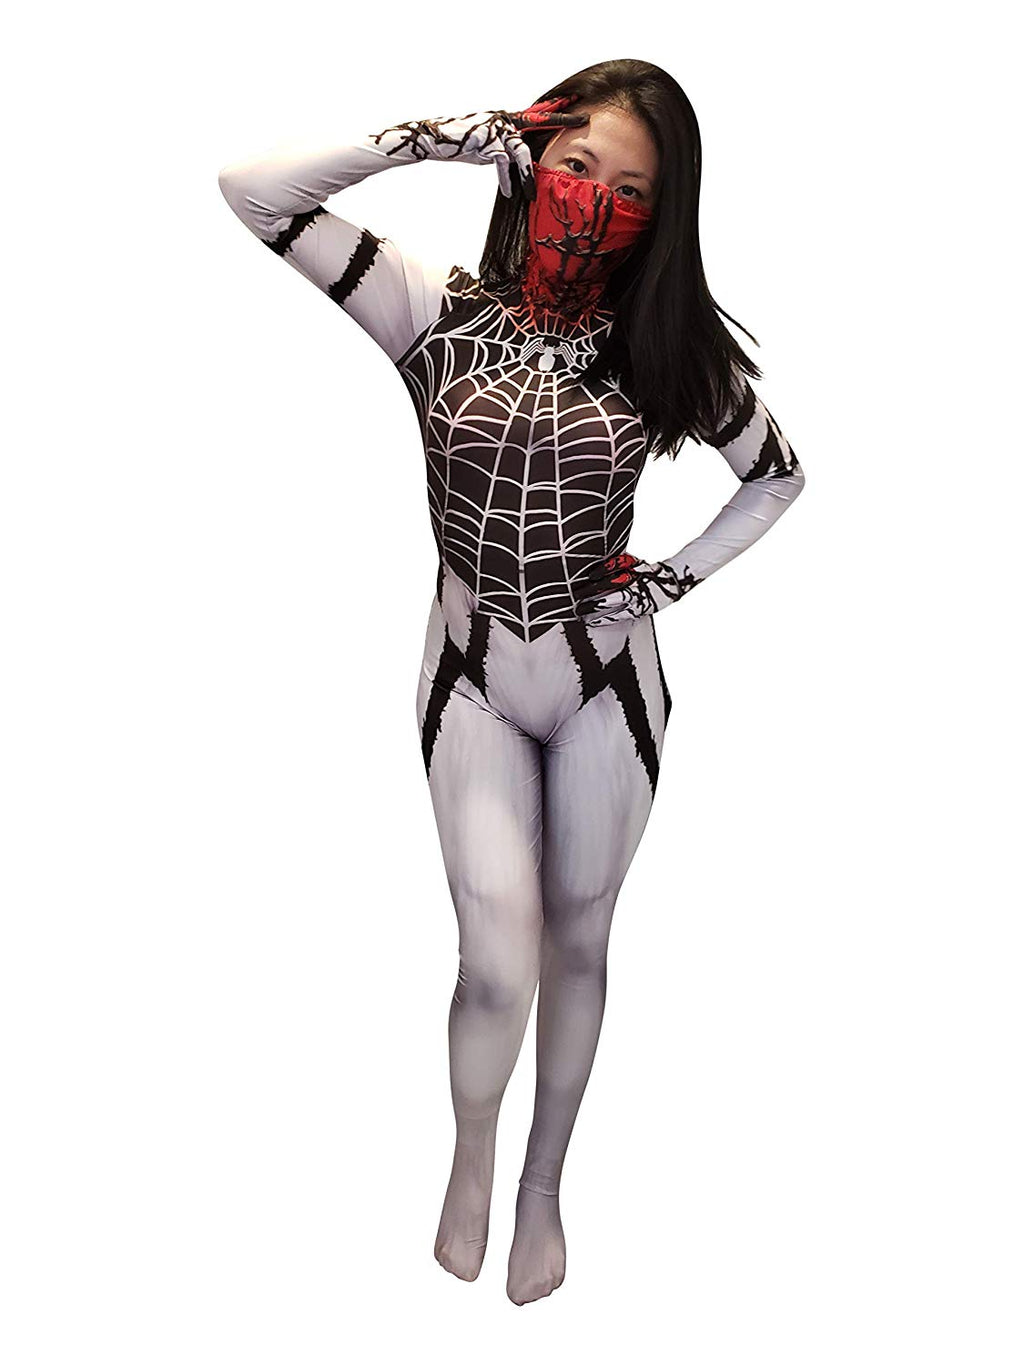 Venom Silk Suit - Aesthetic Cosplay, LLC